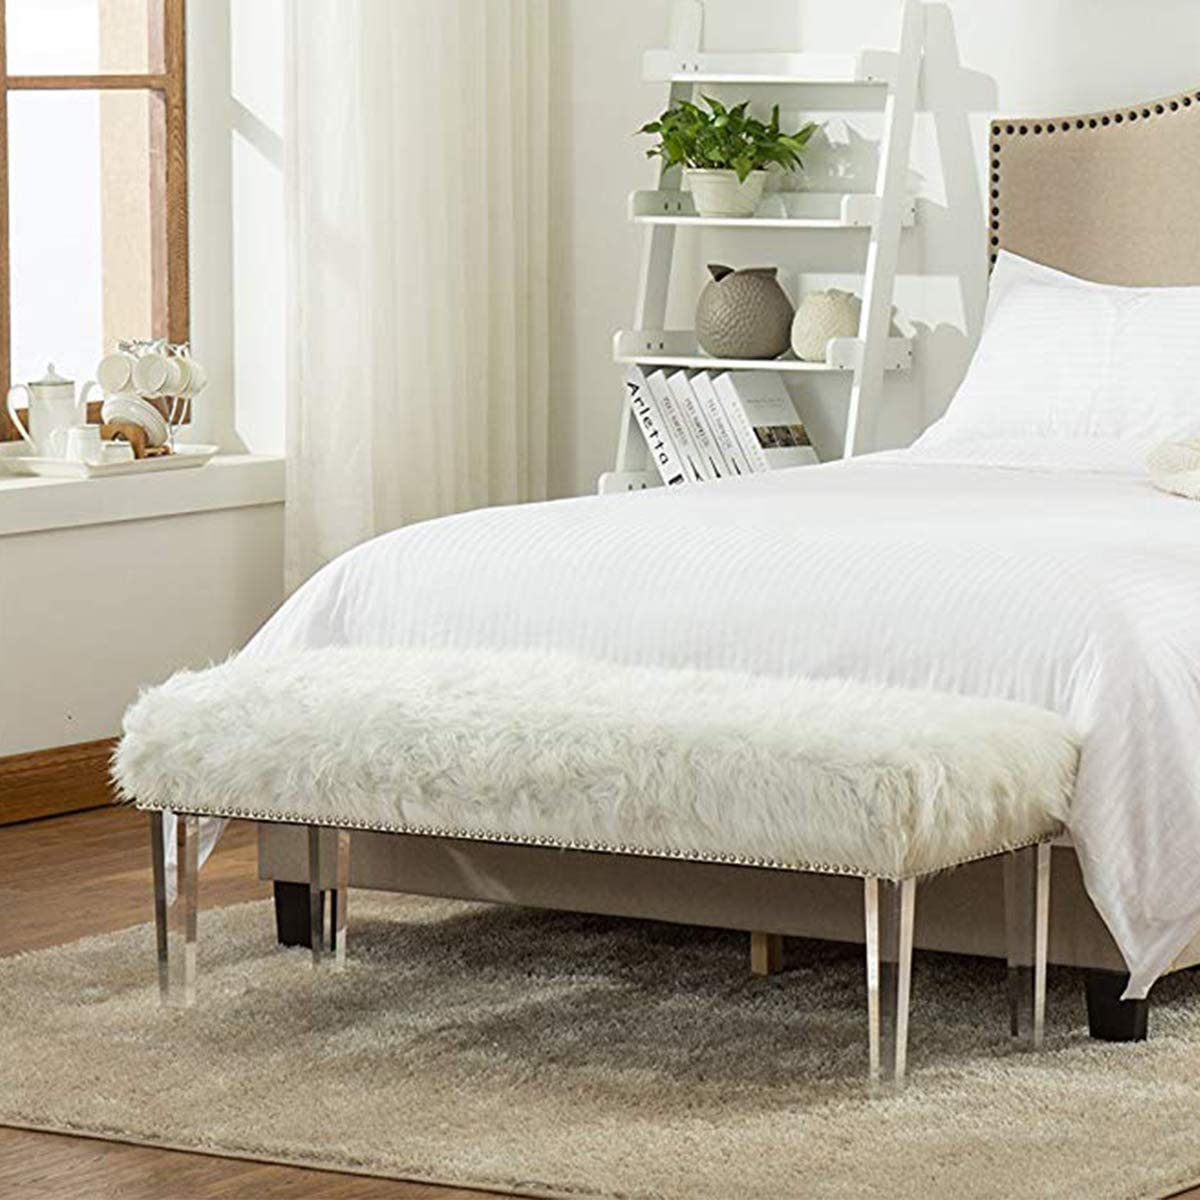 Andeworld White Fur Ottoman Bench with Nailhead Upholstered Bed Bench Footstools Large, White Acrylic Legs